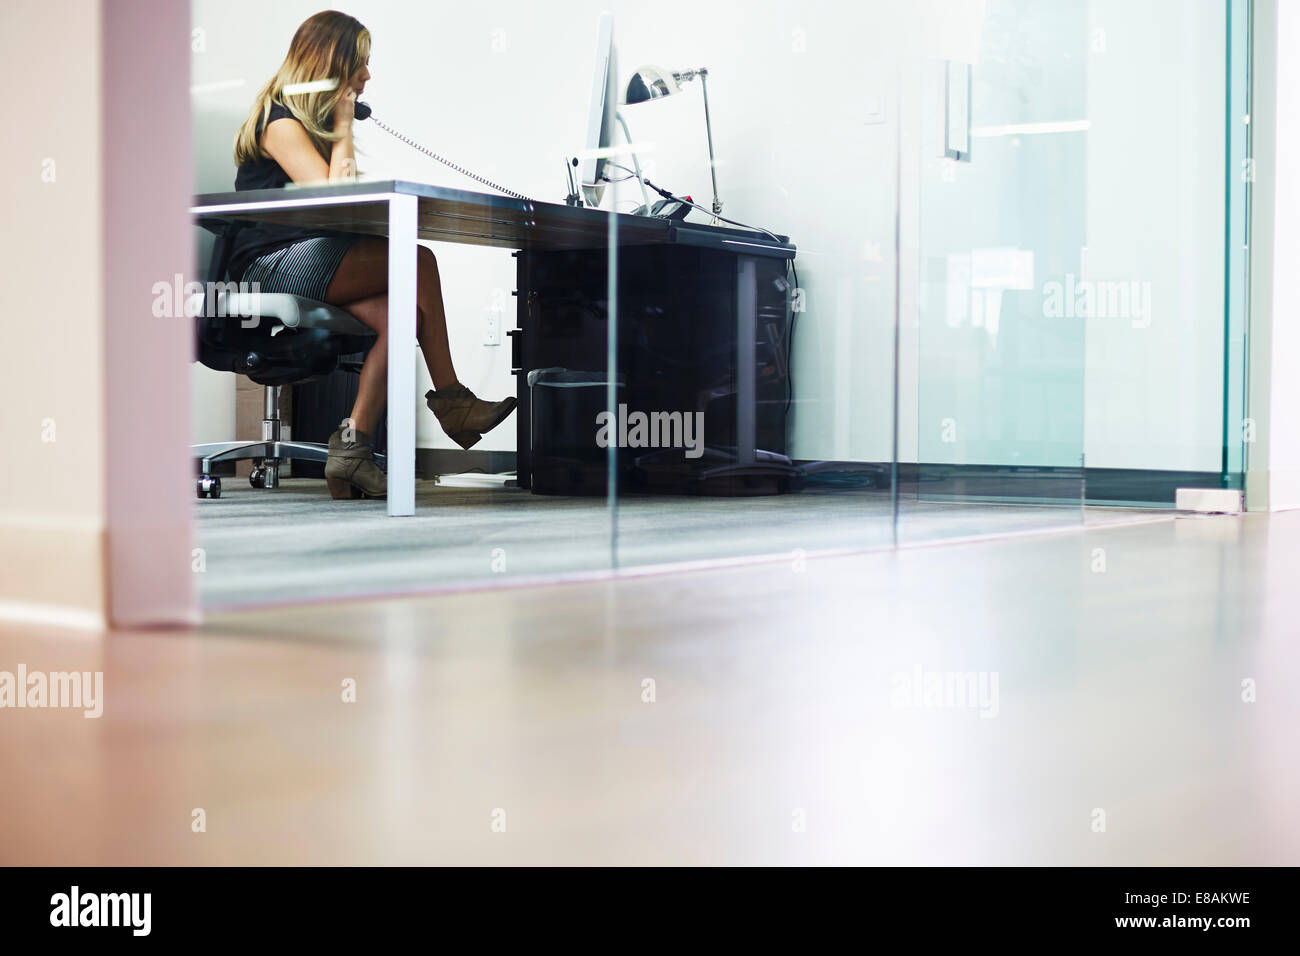 Young woman on telephone in office - Stock Image